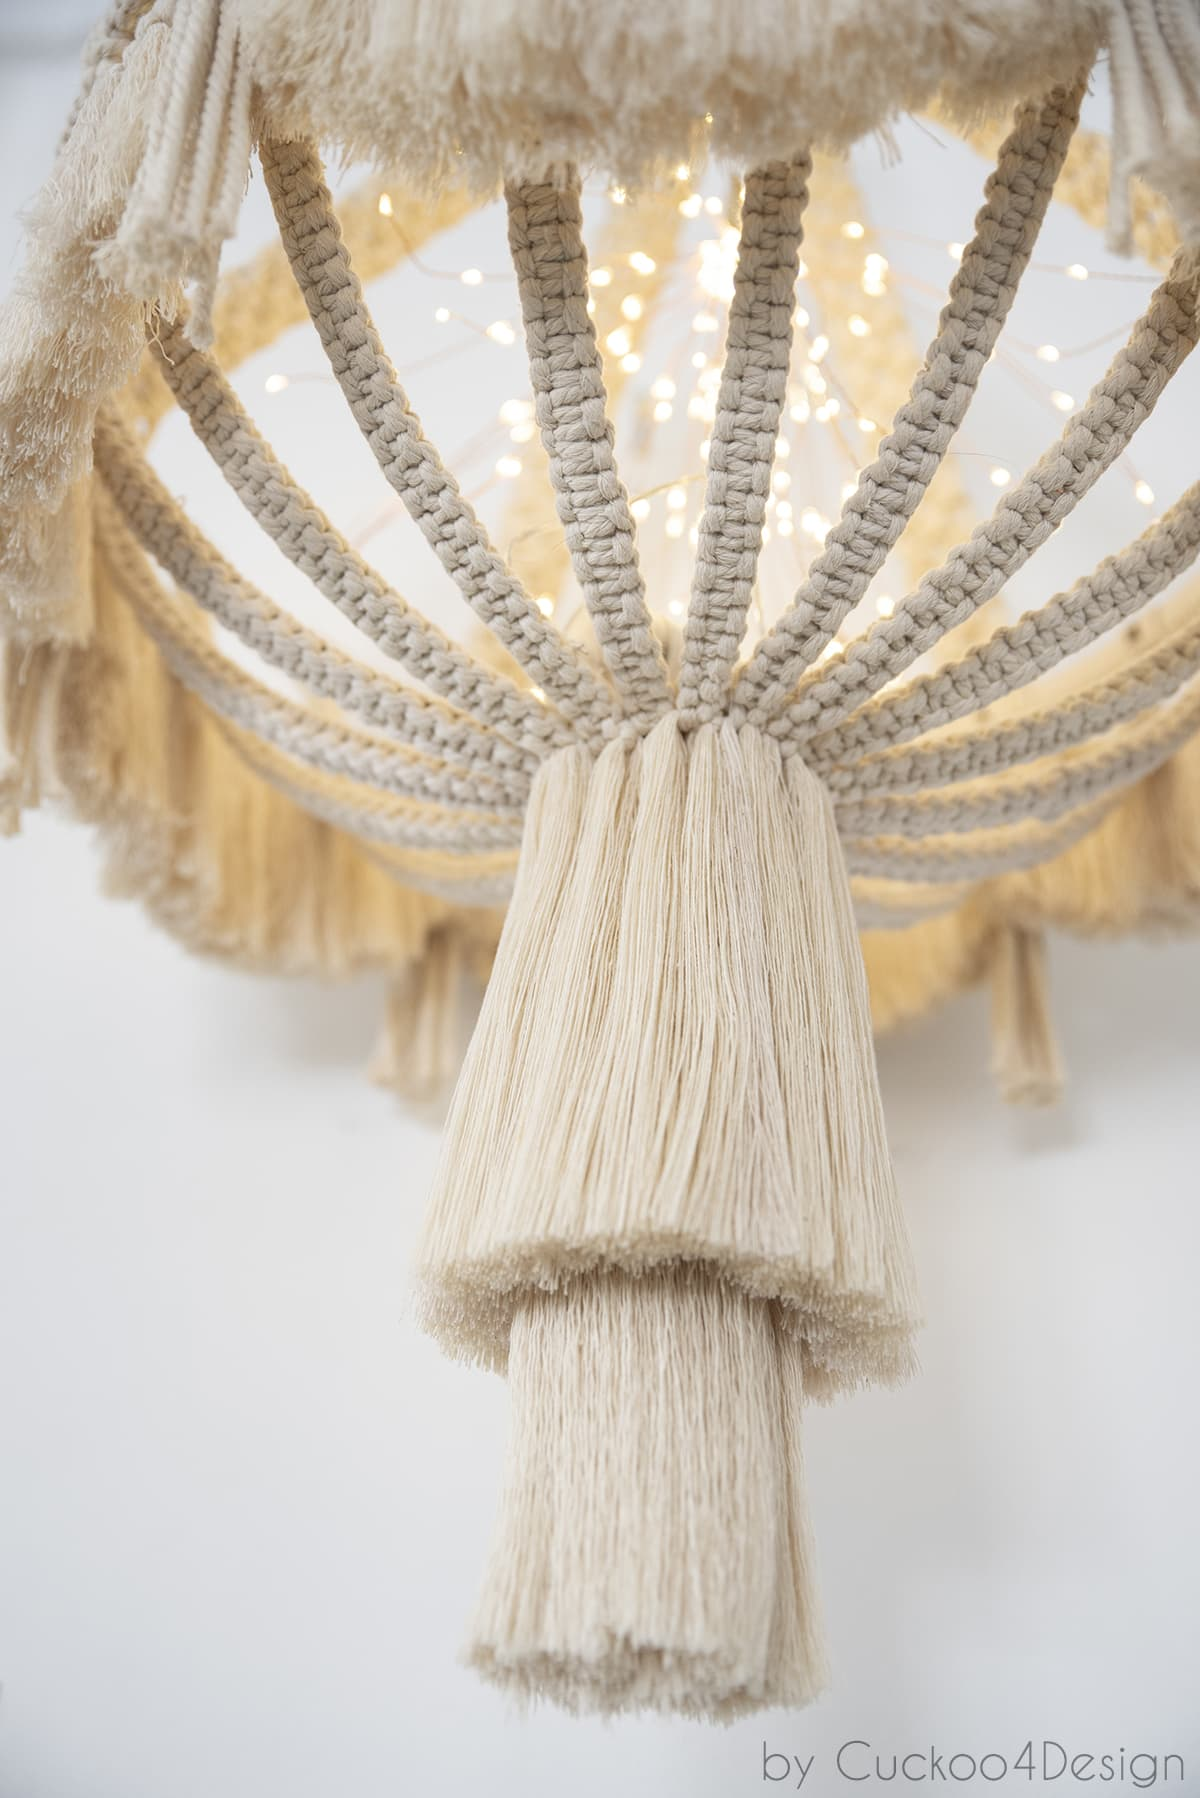 close-up of bottom of macrame chandelier with lights